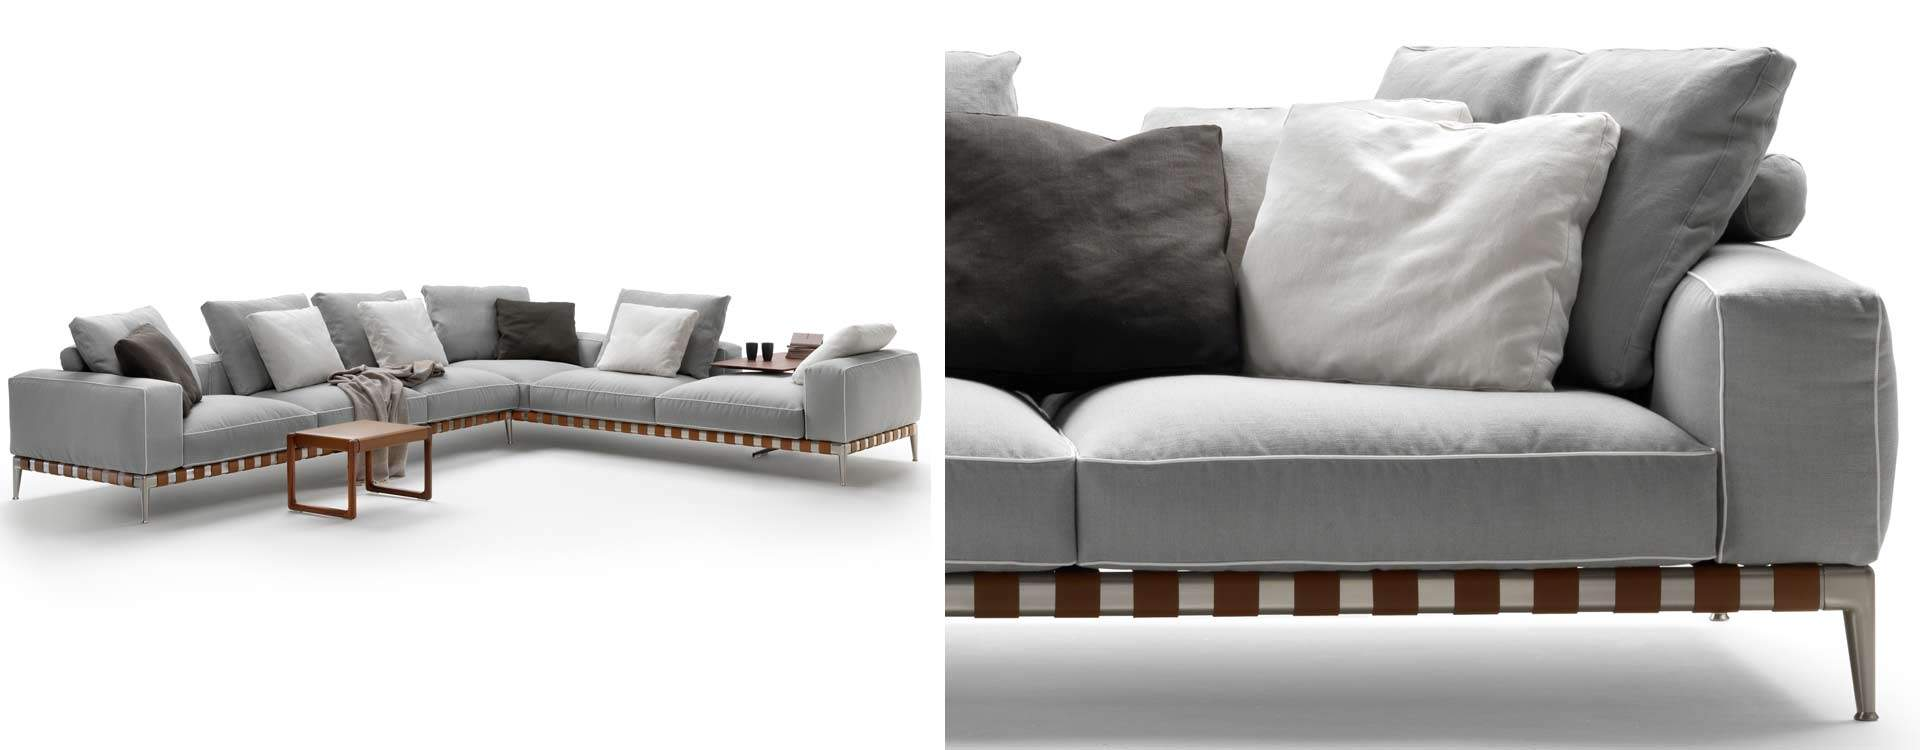 Gregory sofa Flexform collection 2020